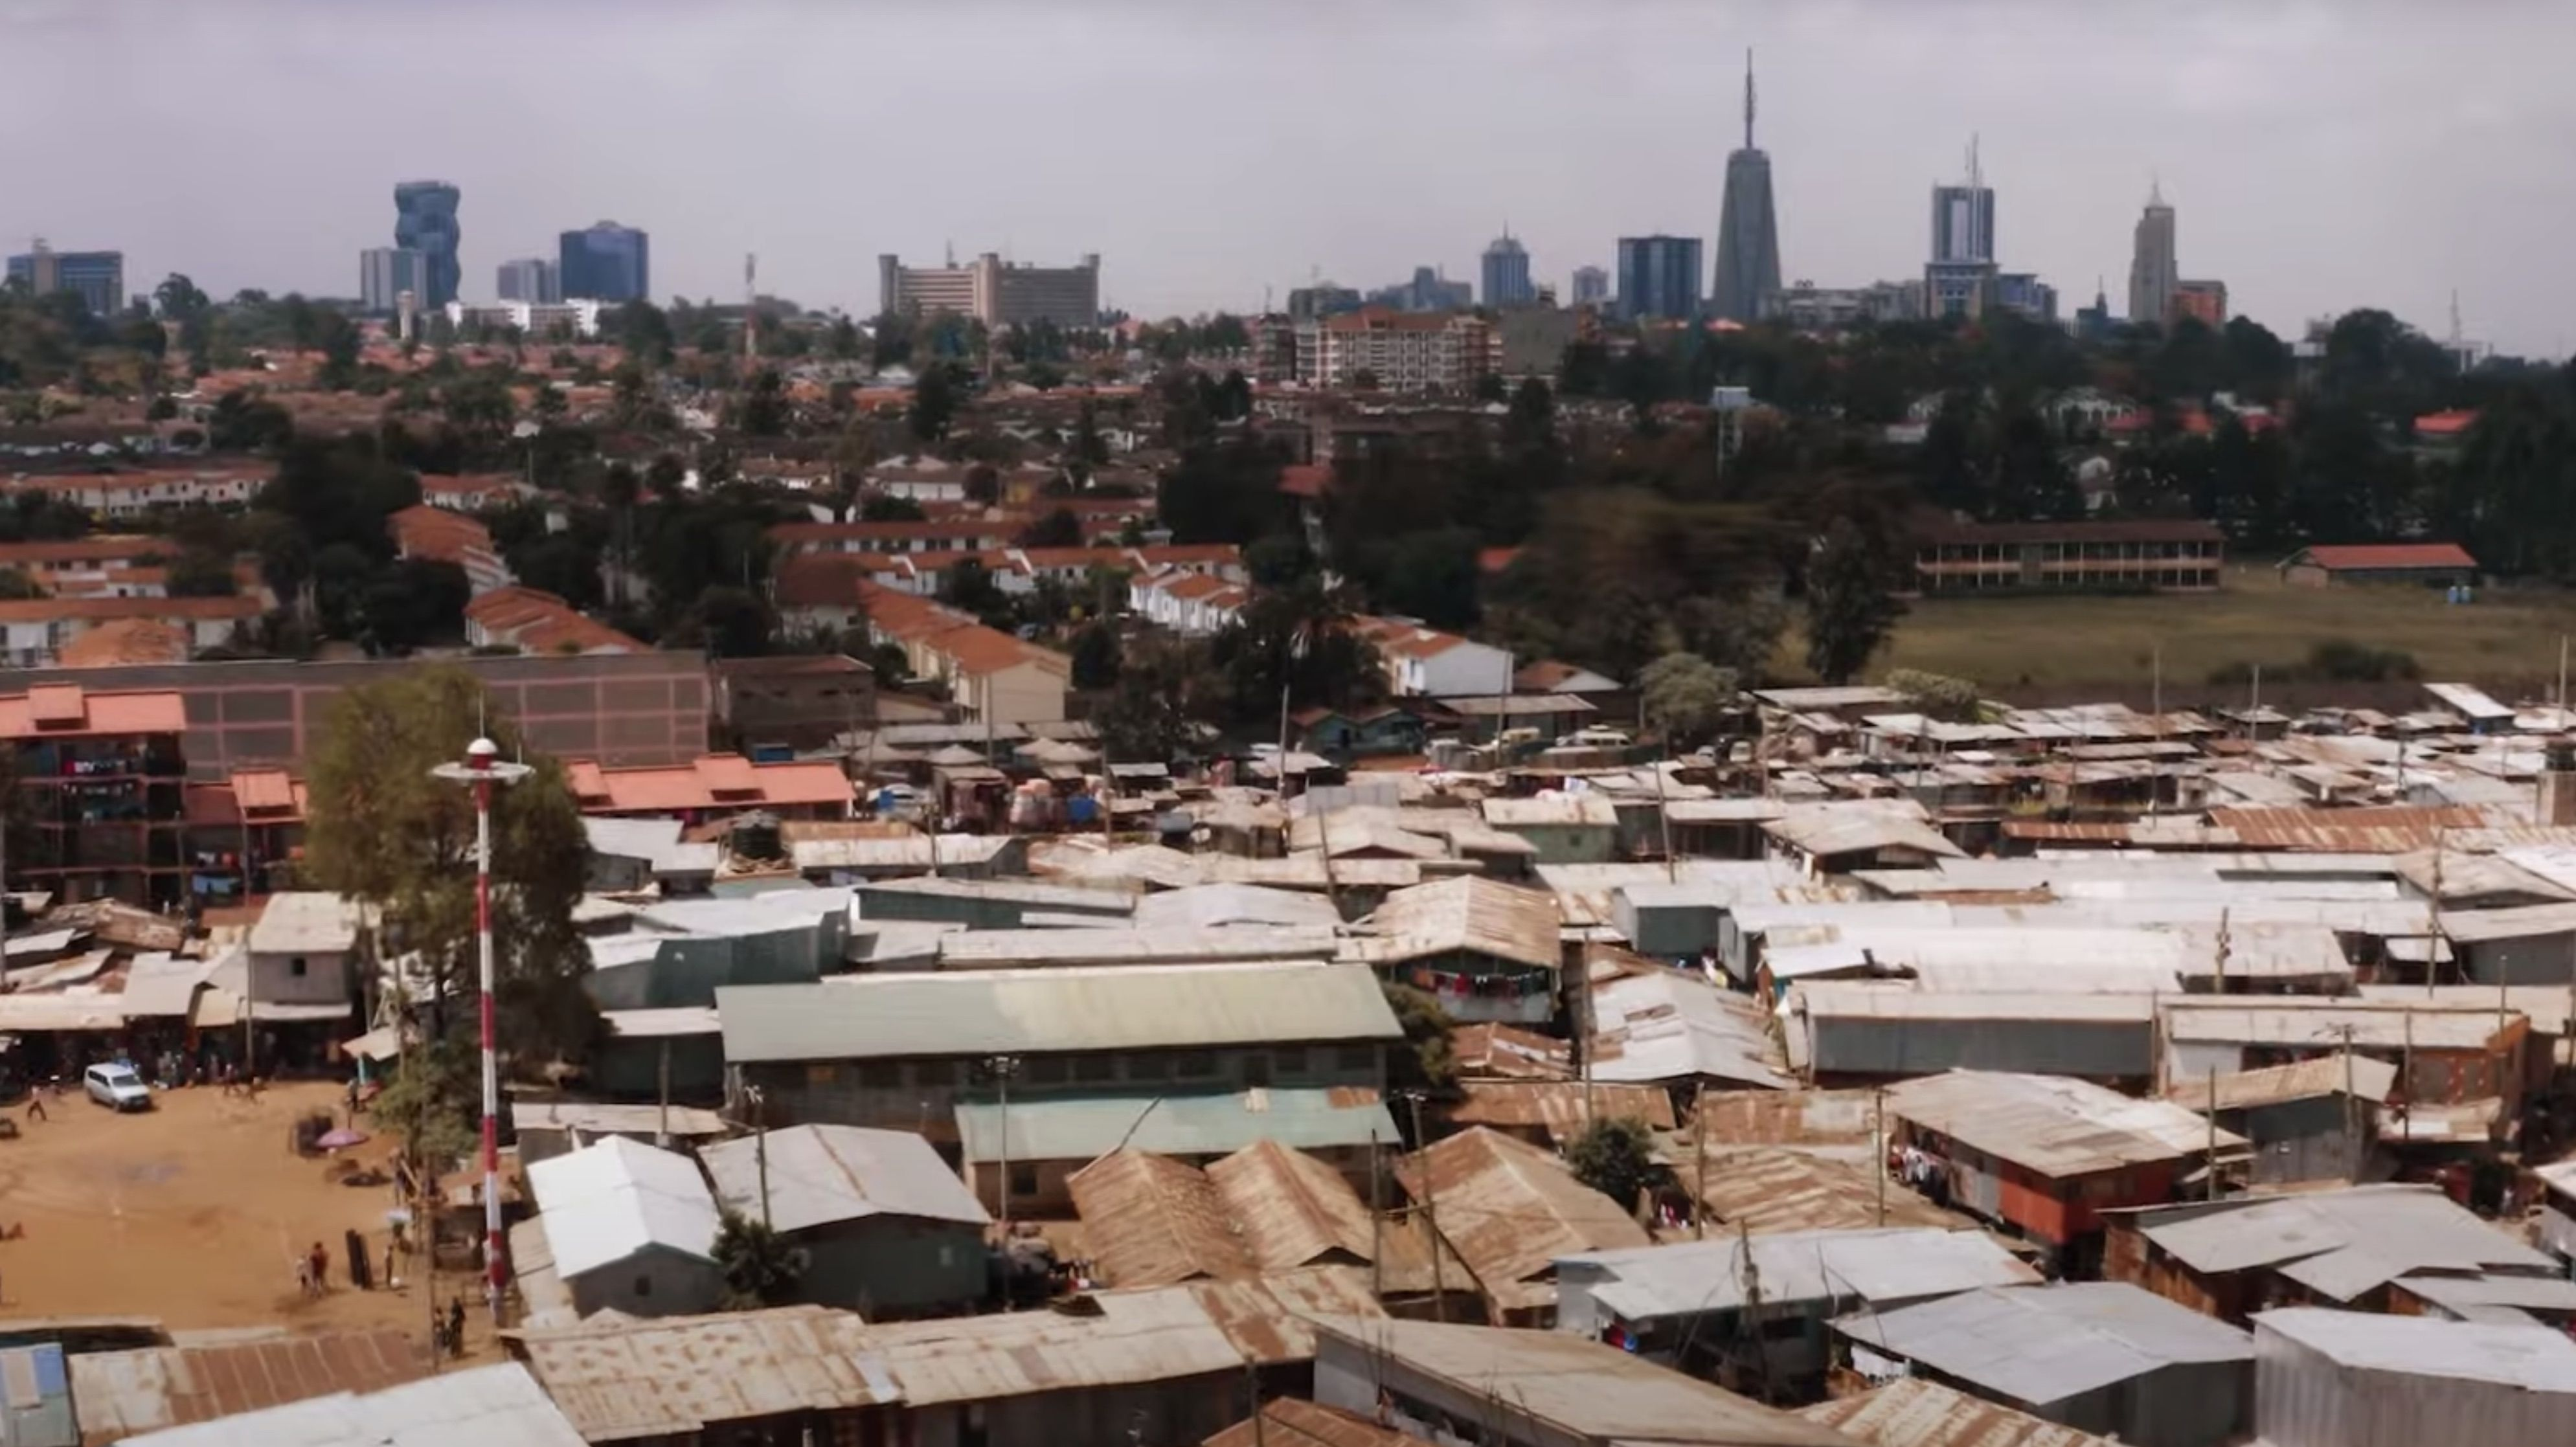 FACES OF AFRICA – KIBRA IS HOME